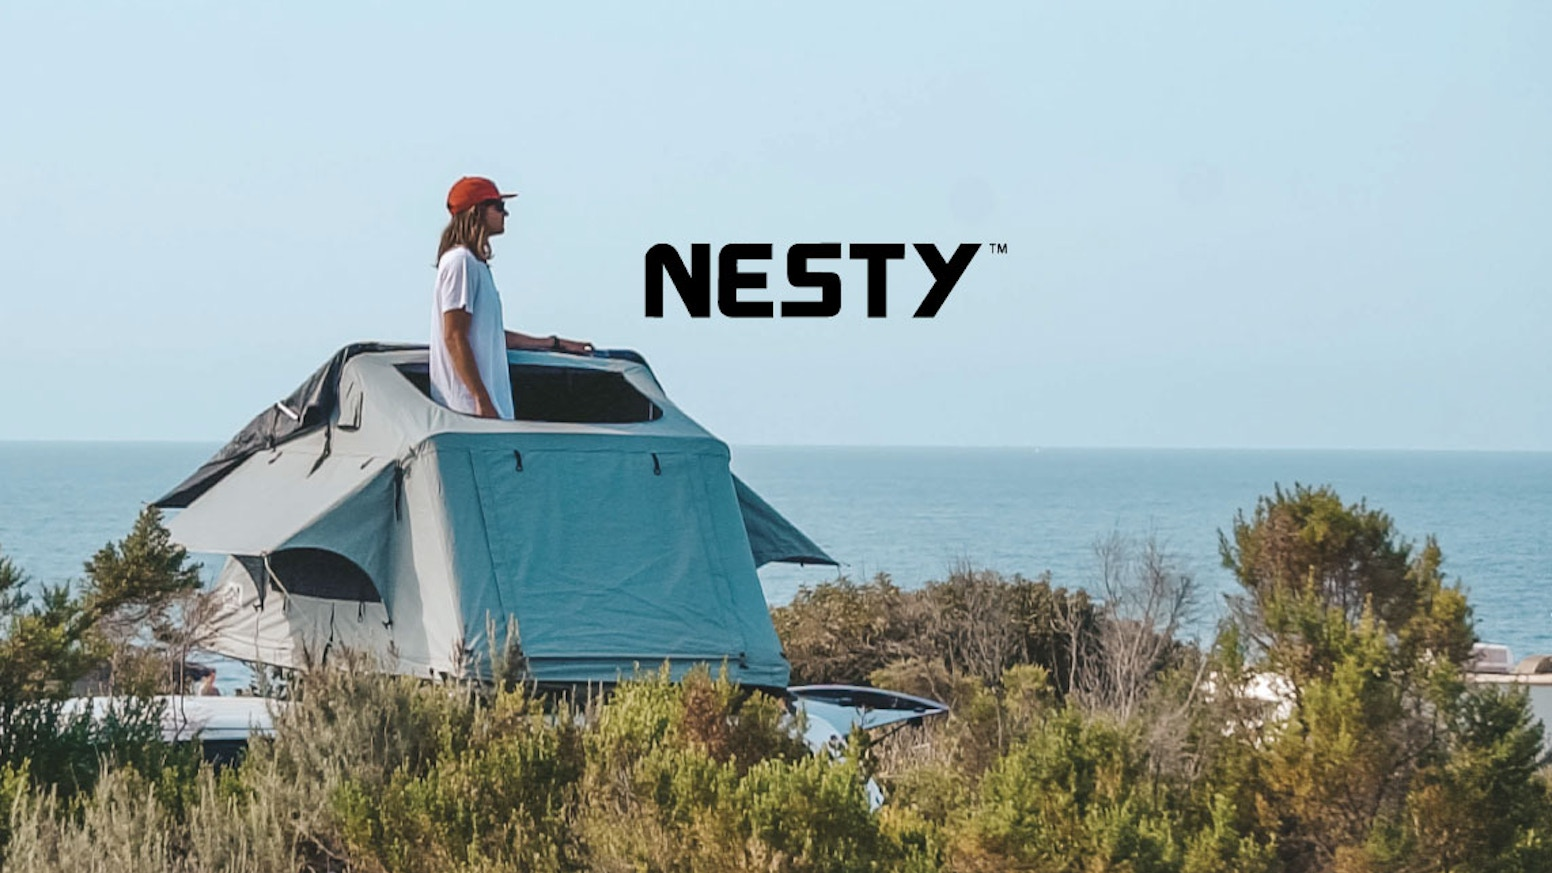 Nesty Roof Tent Ultra Low Profile Ruggedized Roof Tent By Reform